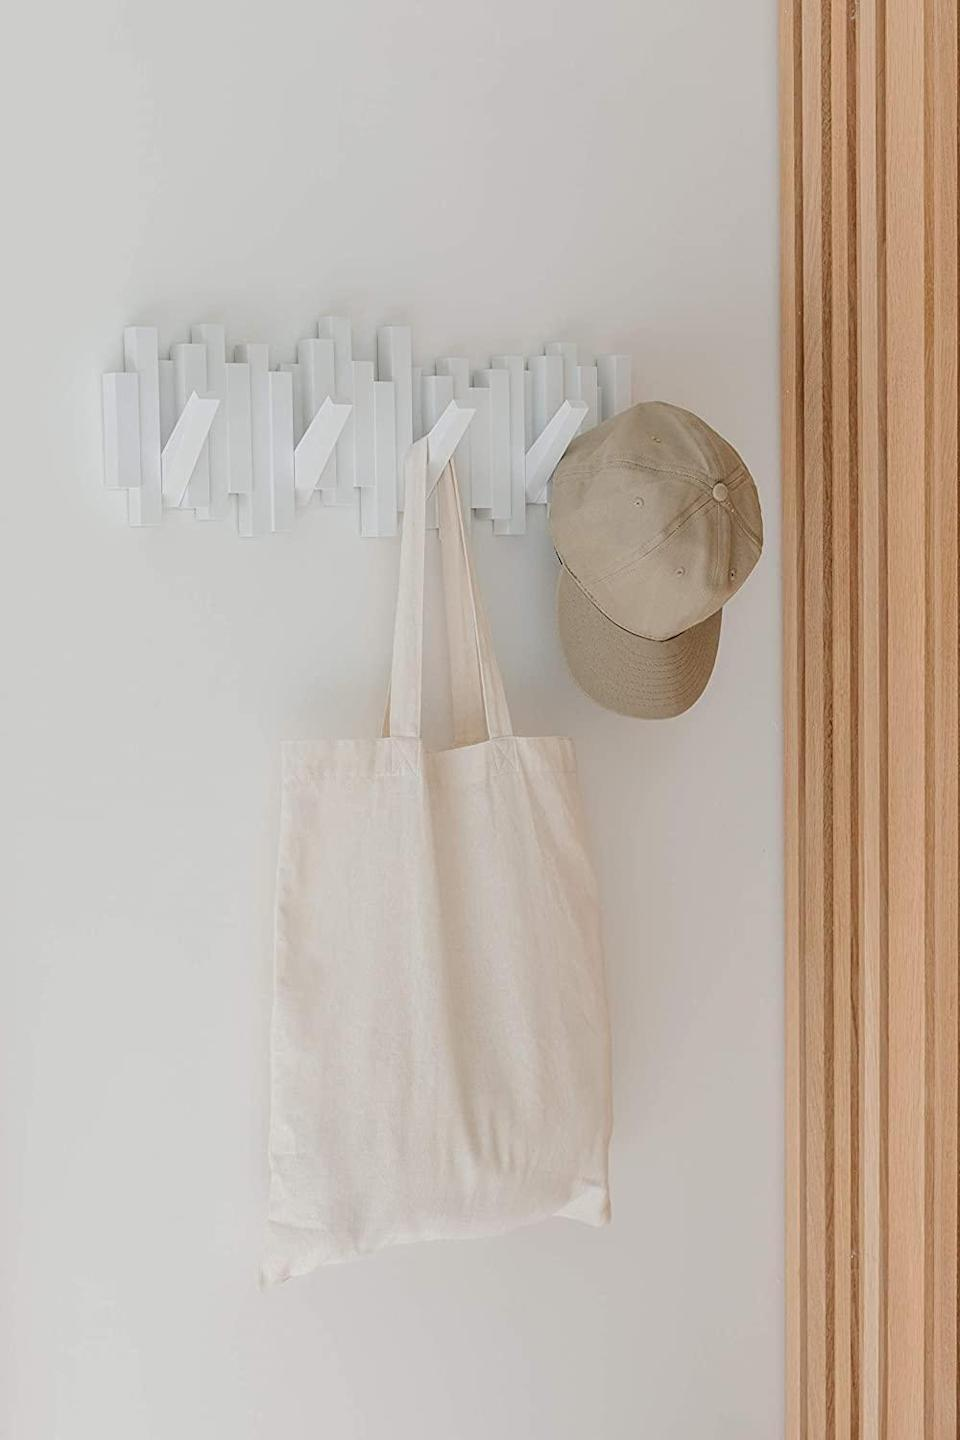 """<h3>Modern Mounted Coat Rack</h3><br>Coat racks are not decor duds — and this $25 sculpturesque piece proves it. <br><br><strong>Umbra</strong> Sticks Modern Mounted Coat Rack, $, available at <a href=""""https://amzn.to/3pXrpm7"""" rel=""""nofollow noopener"""" target=""""_blank"""" data-ylk=""""slk:Amazon"""" class=""""link rapid-noclick-resp"""">Amazon</a>"""